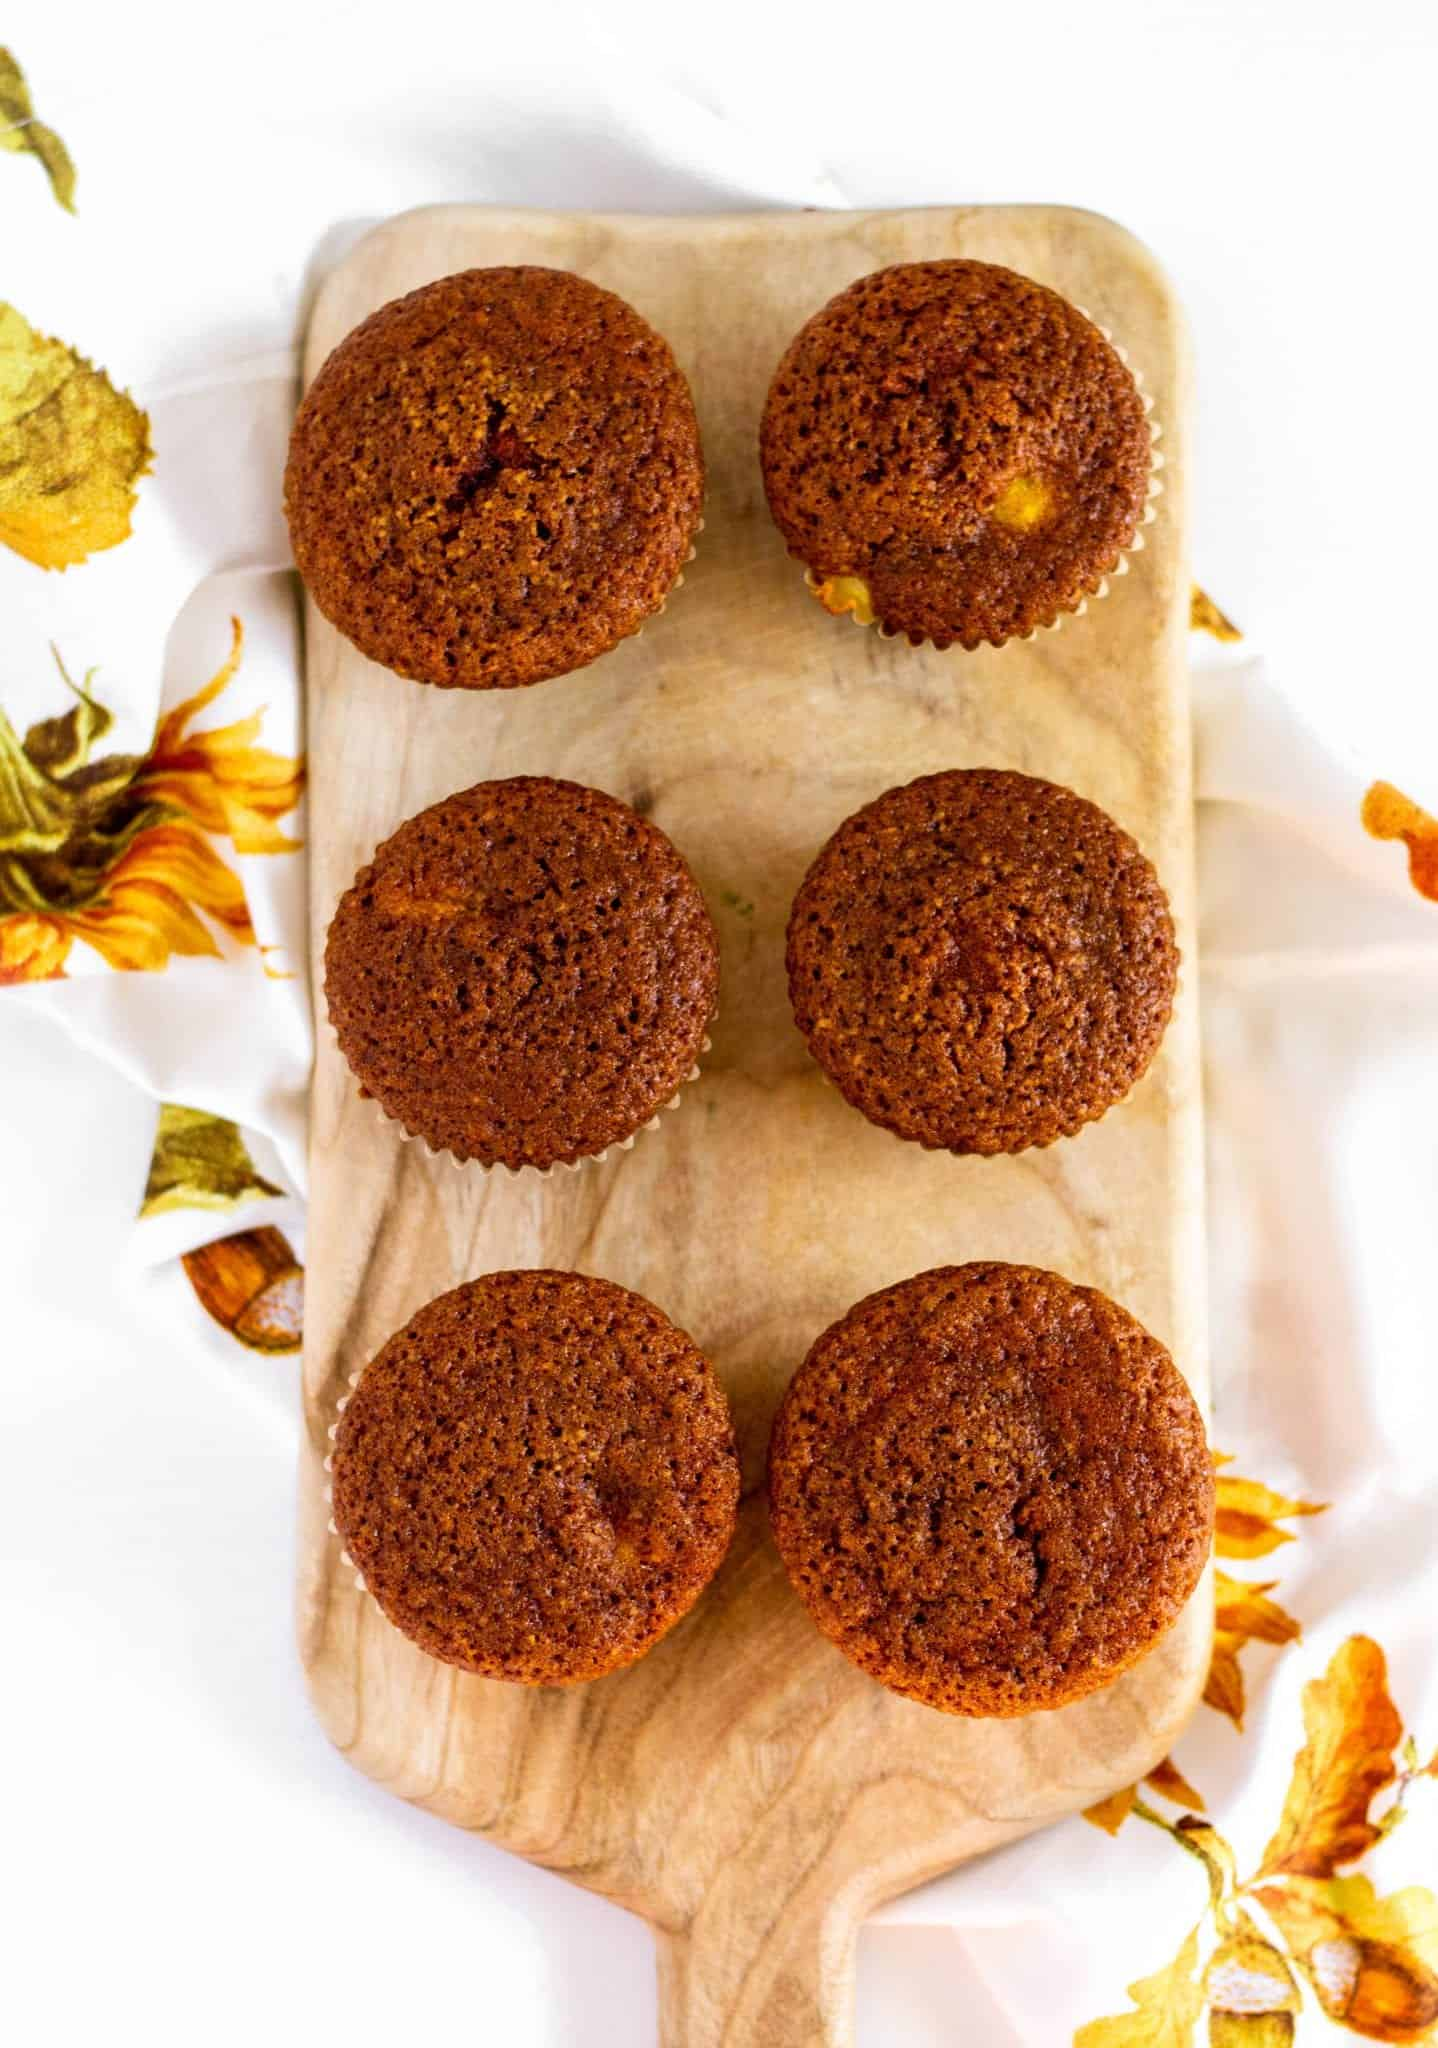 Pumpkin Spice Muffins with Cream Cheese #lowfodmaprecipes #glutenfreerecipes #lactosefree